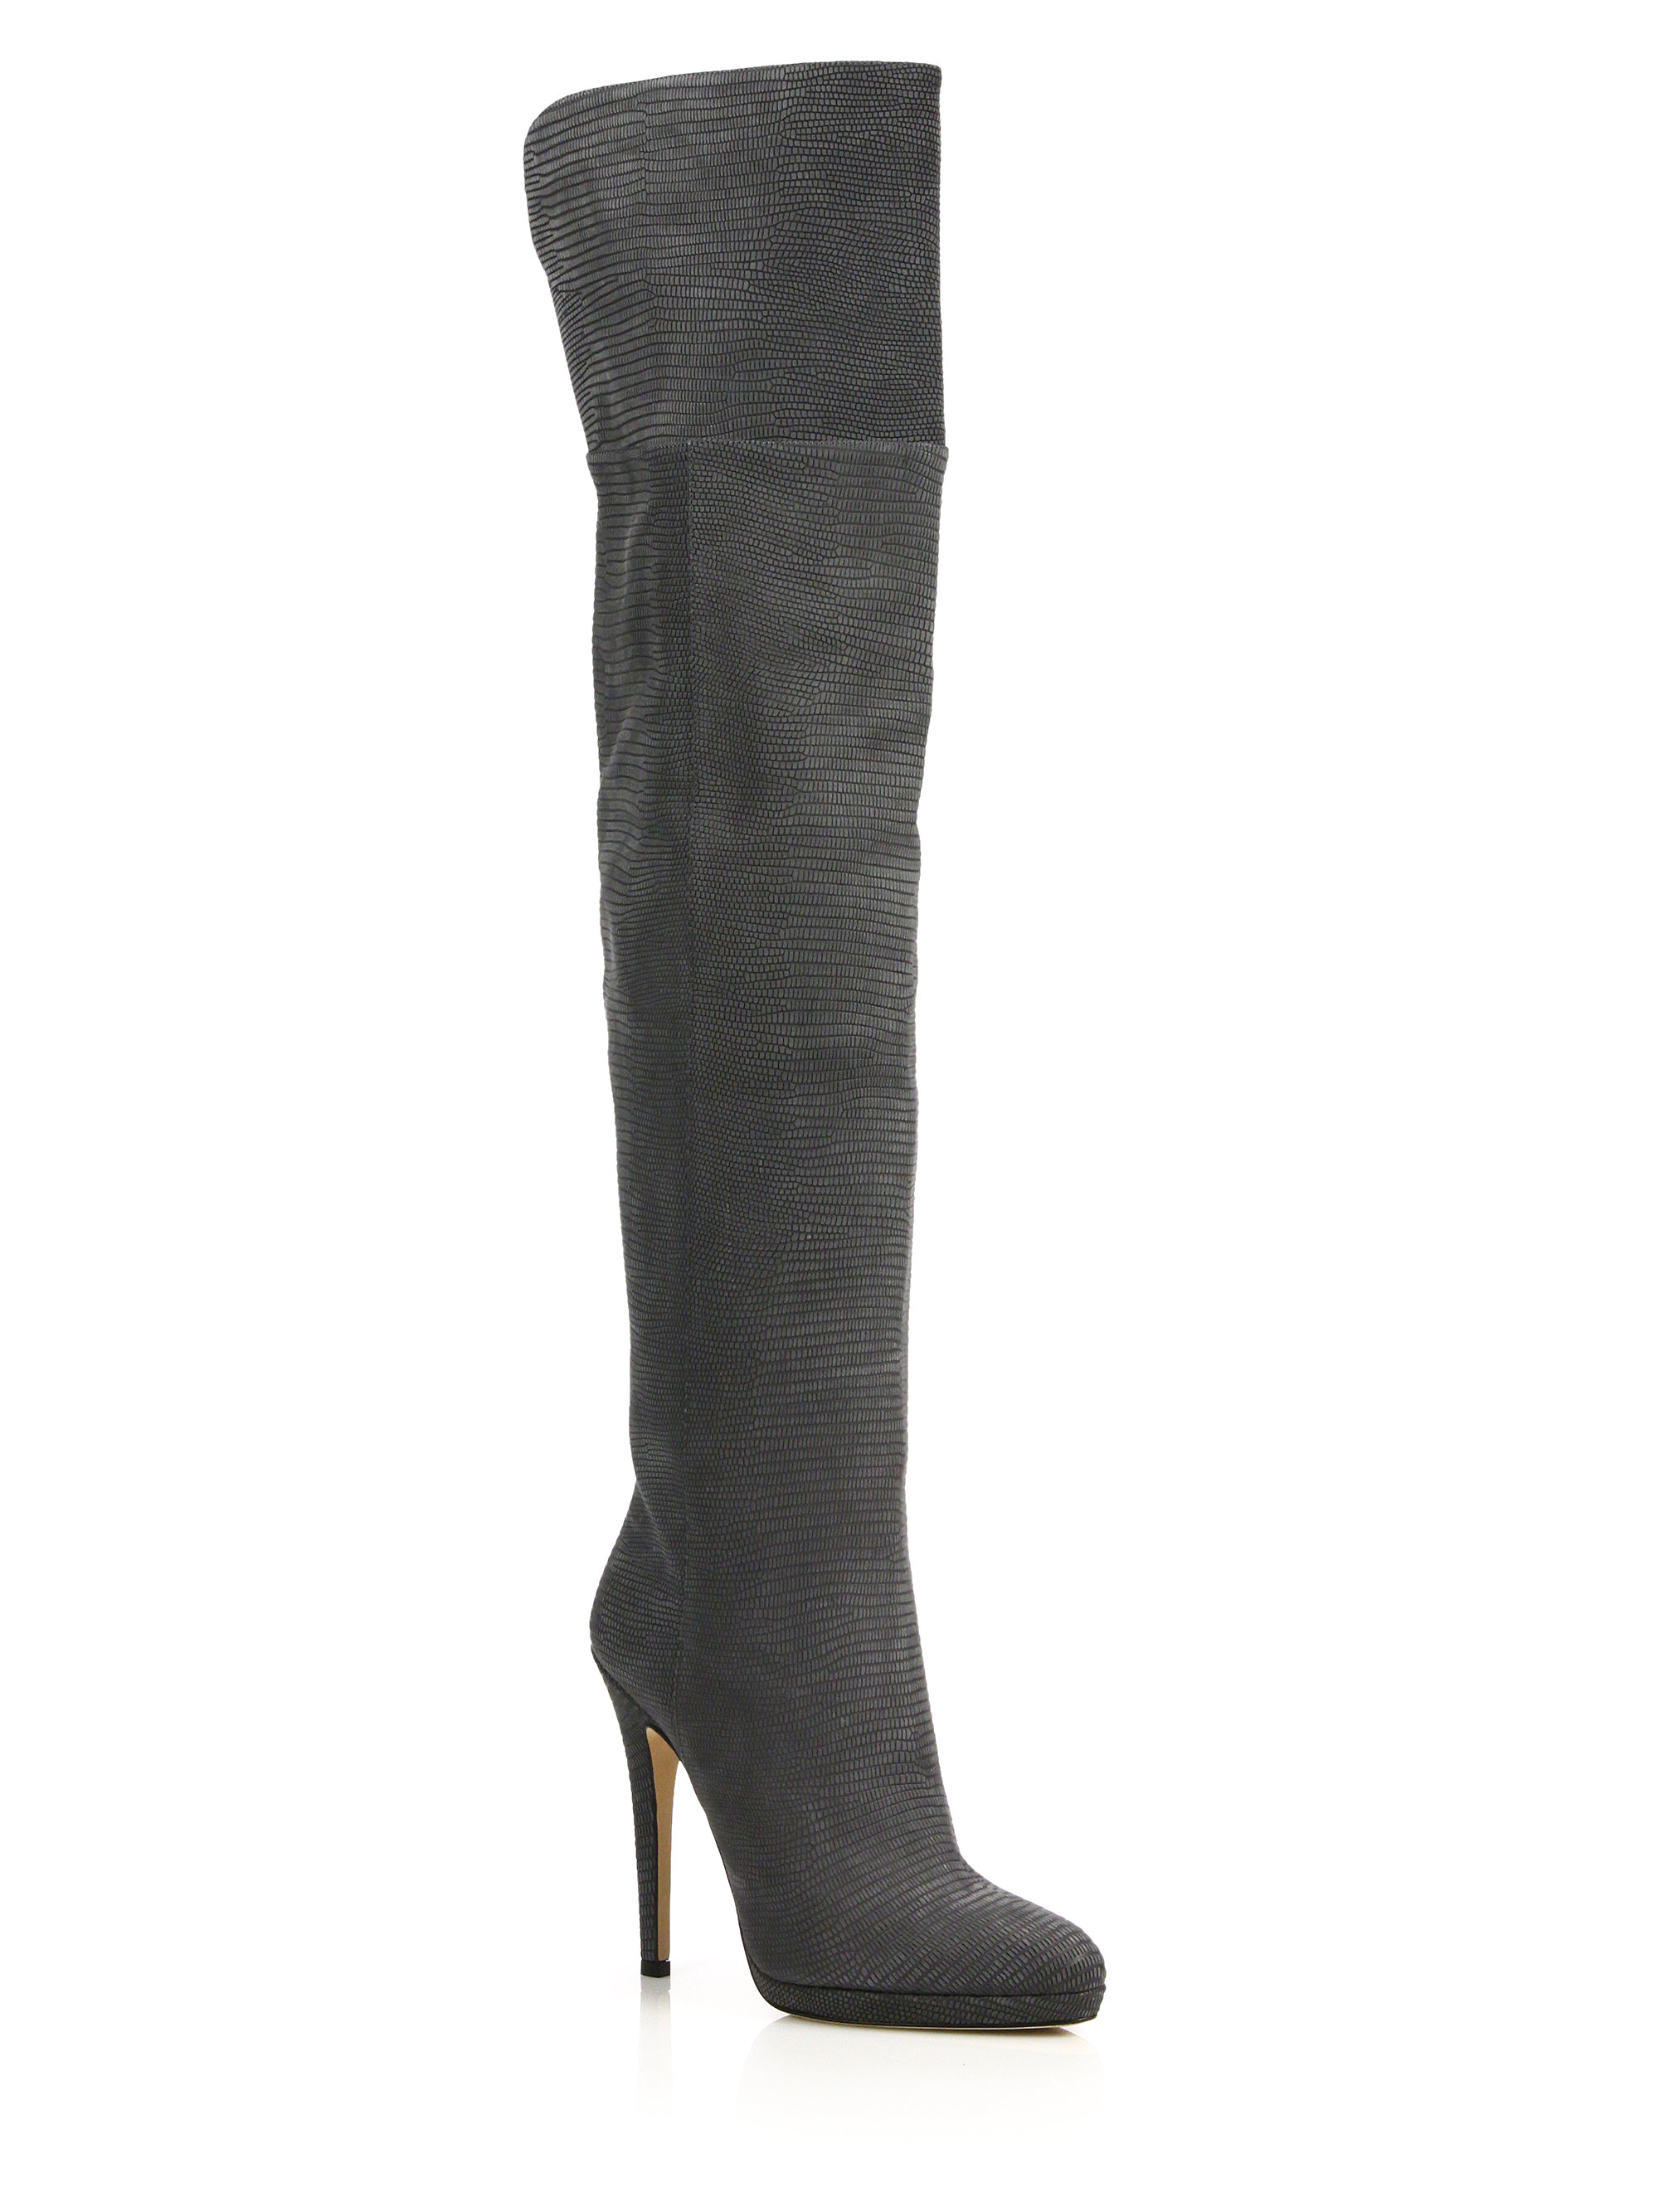 c5d0761394e Jimmy Choo Giselle Lizard-embossed Leather Over-the-knee Boots in ...